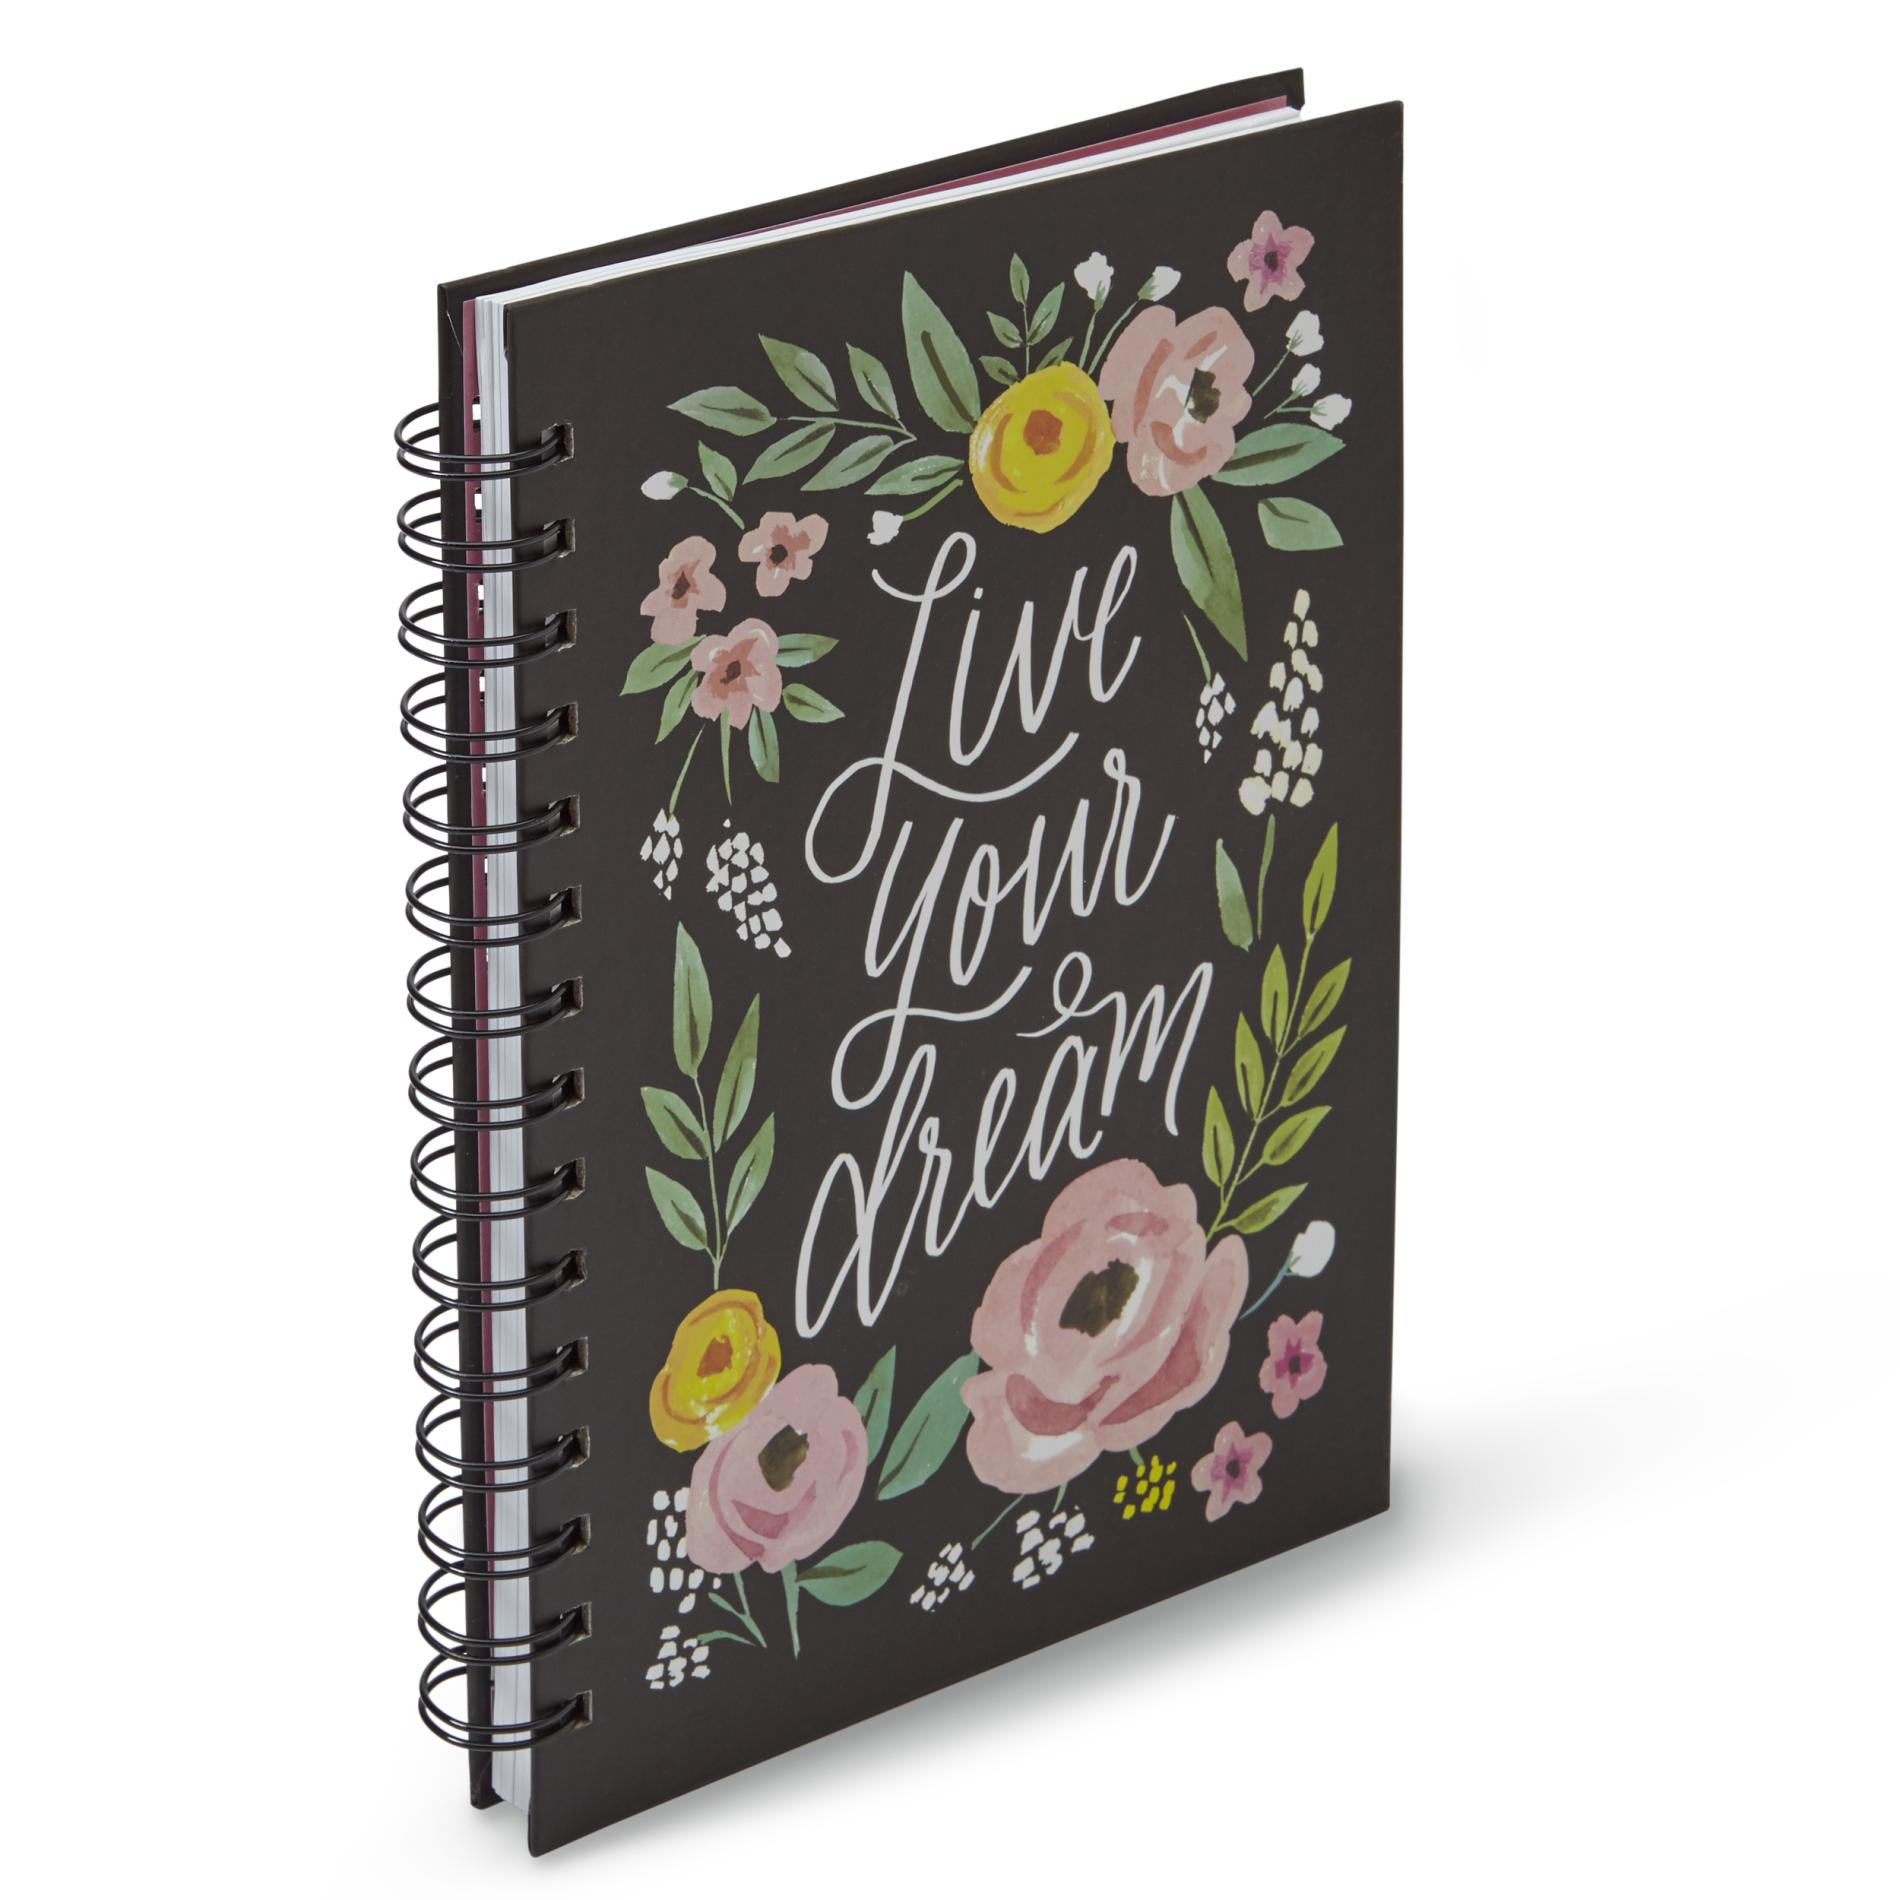 Image of 005-67866 Spiral Notebook - Live Your Dream, Multi Color